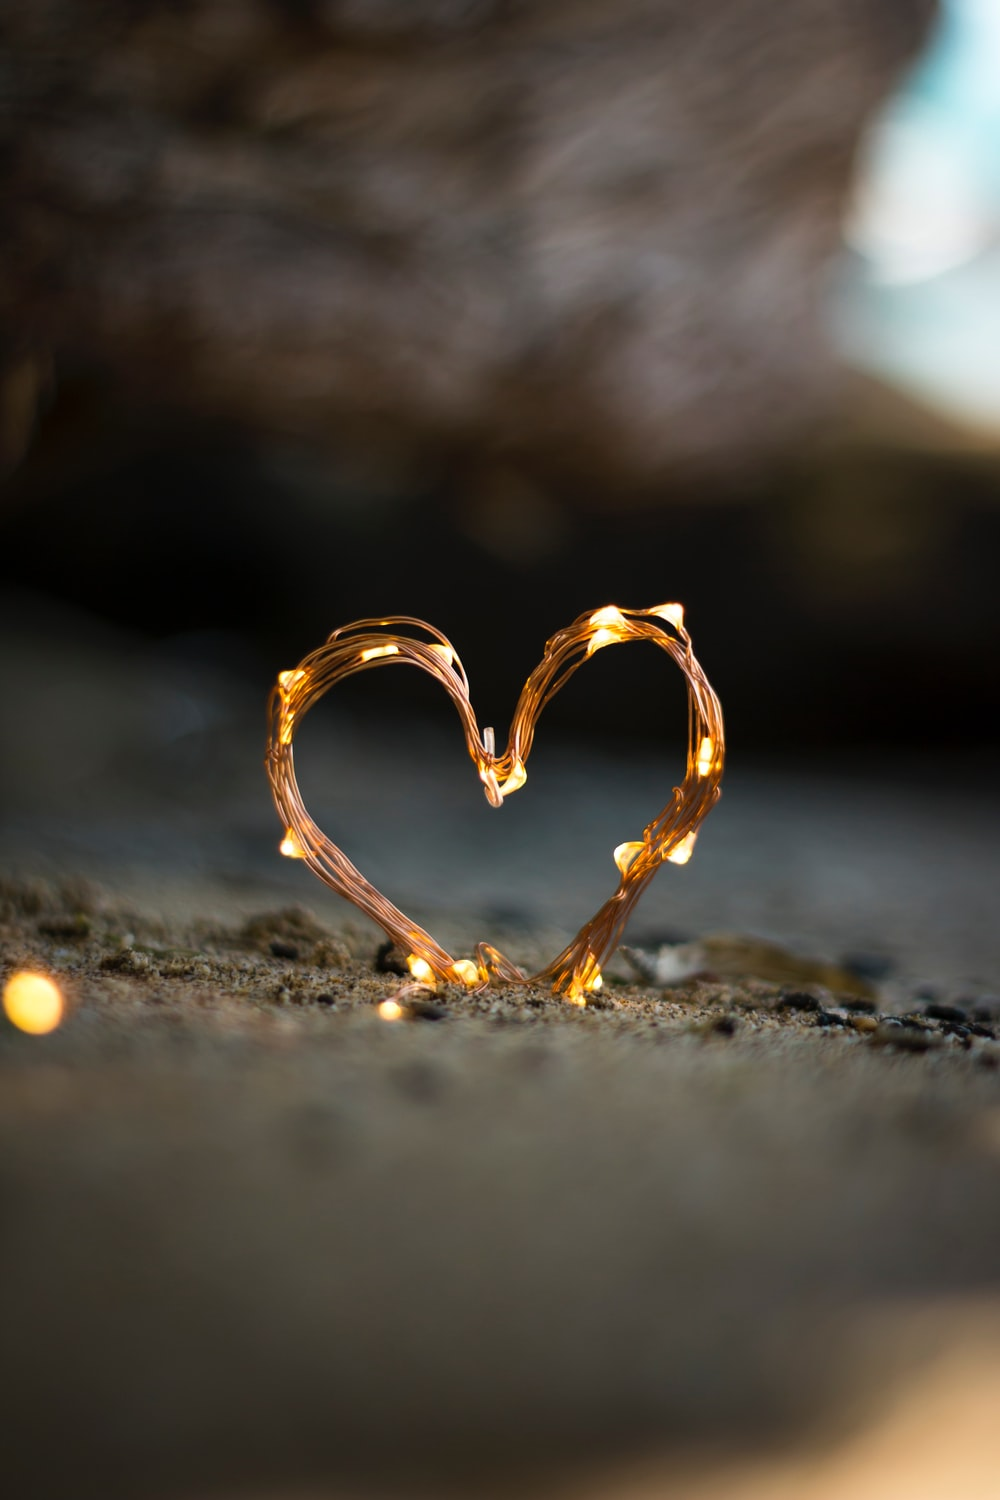 Heart Pictures Hd Download Free Images On Unsplash